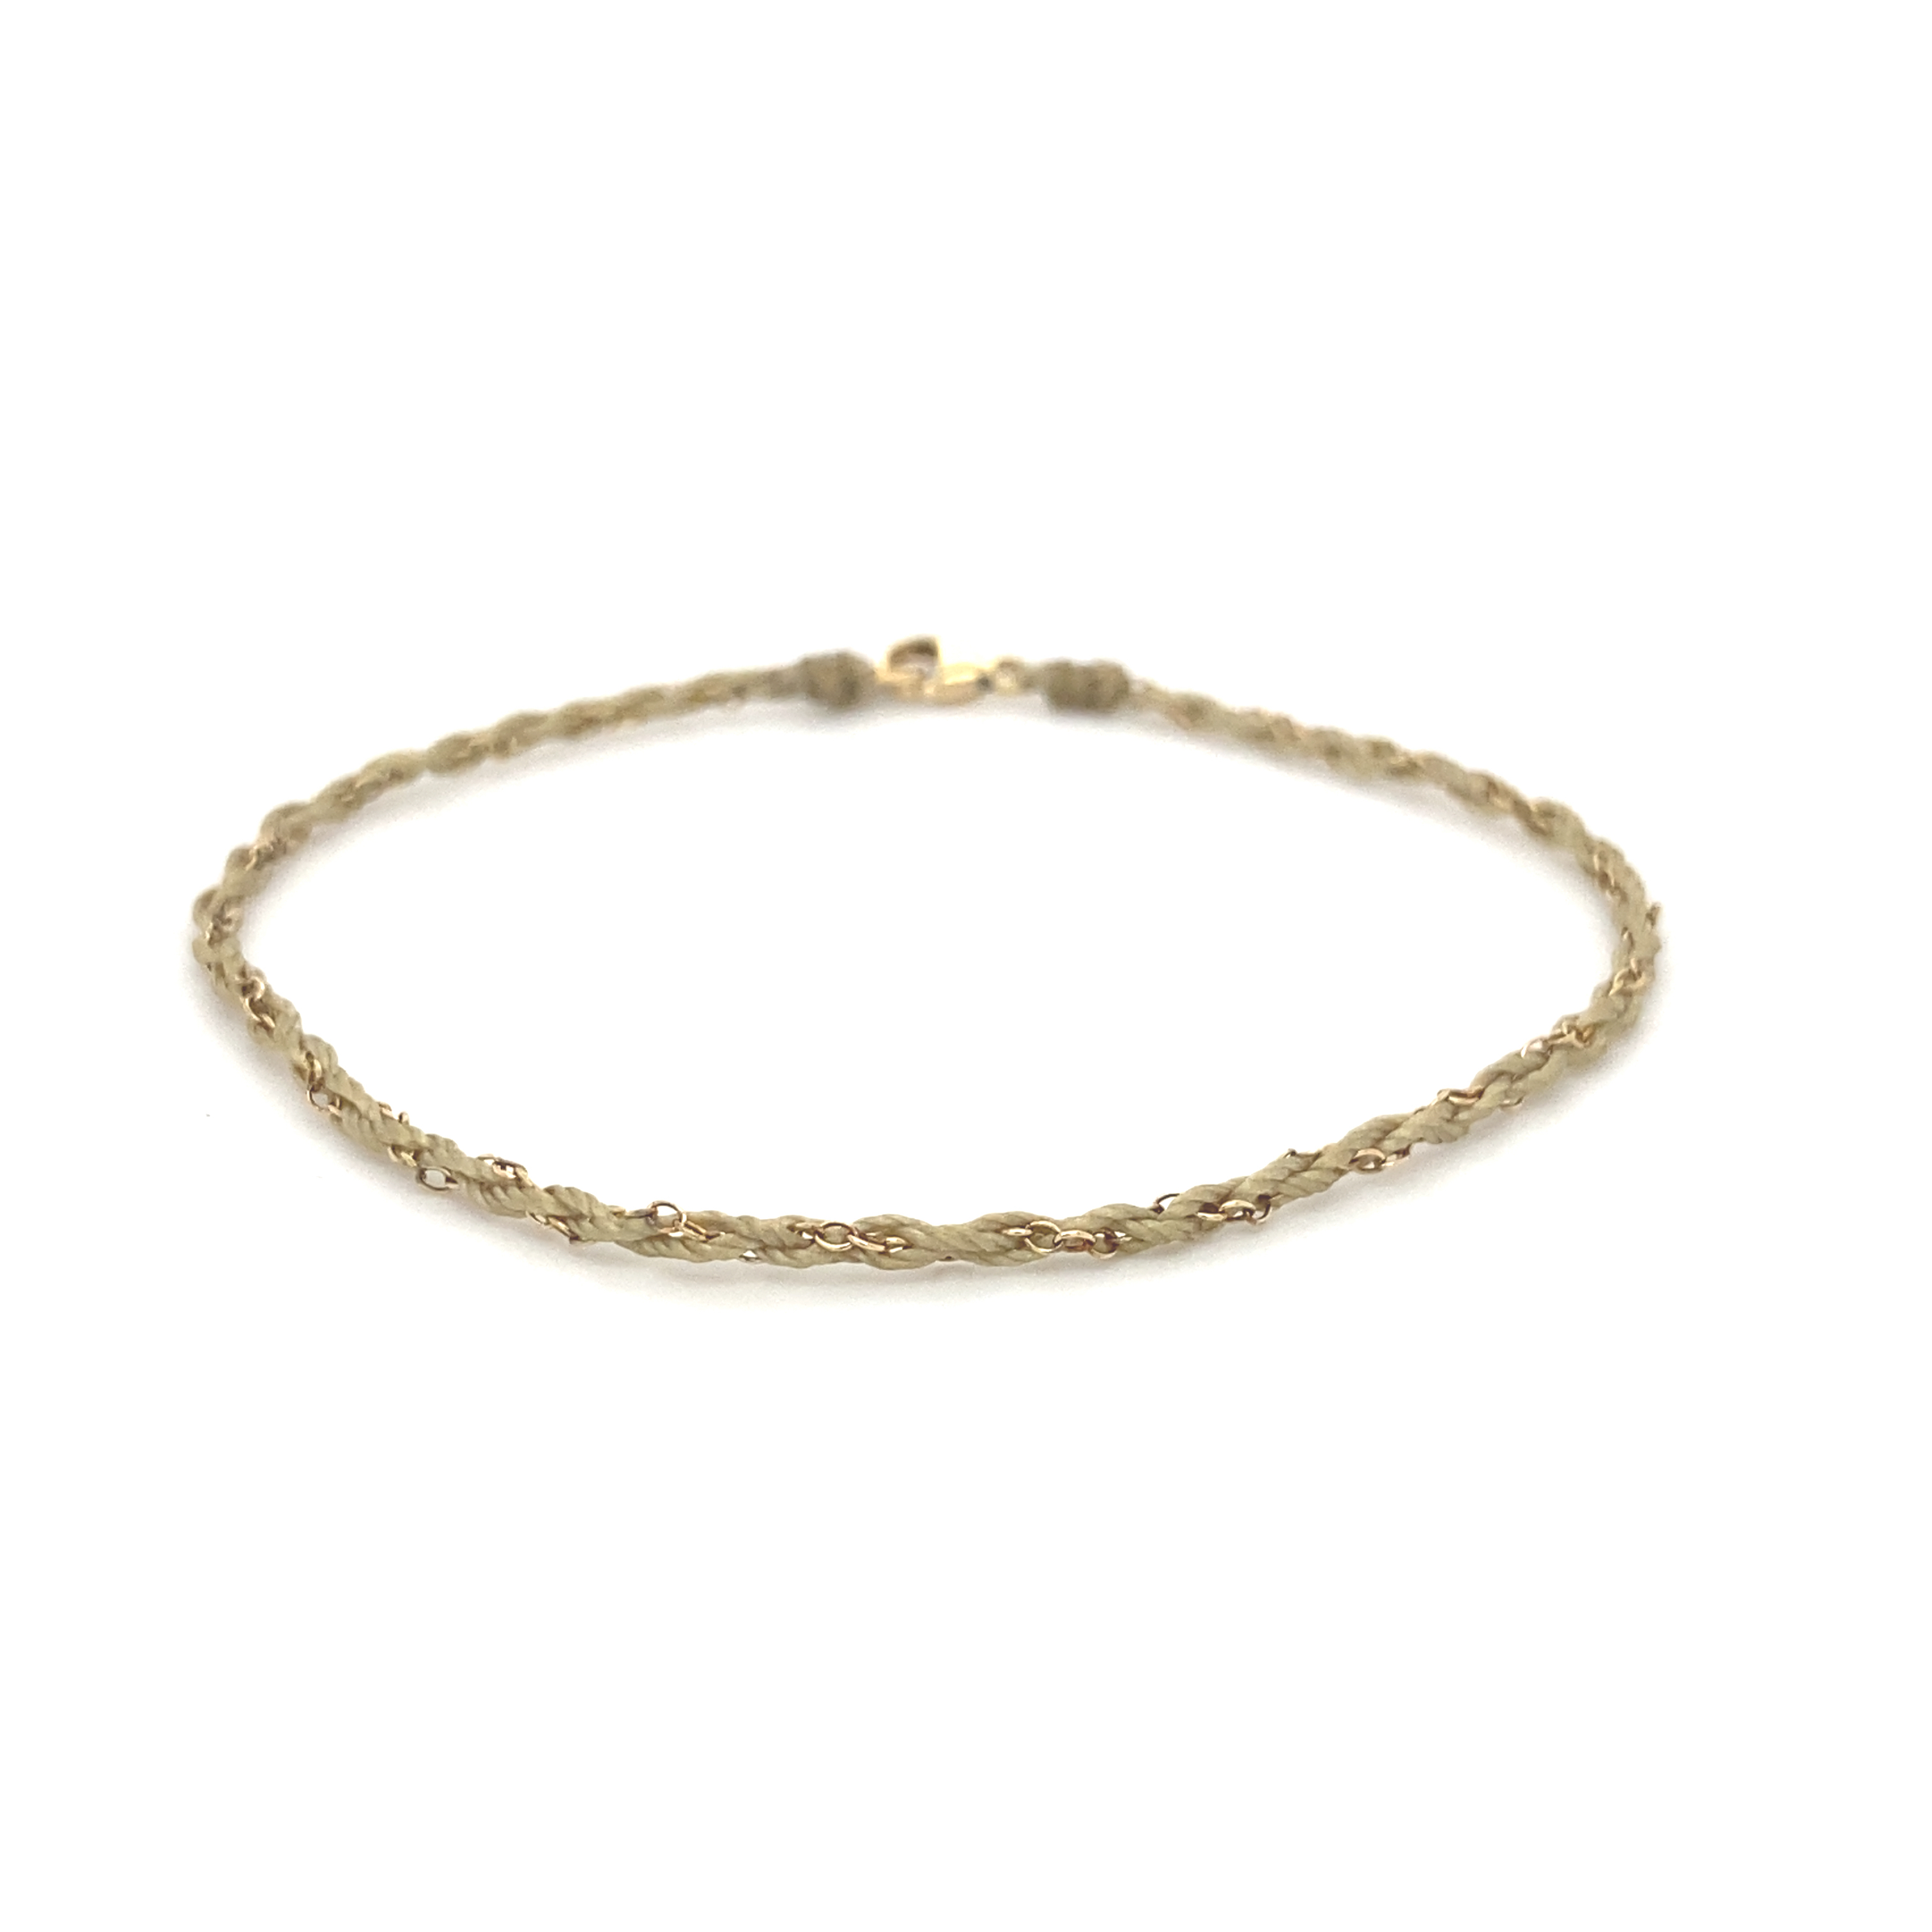 Skinny tan silk and 9ct gold chain bracelet